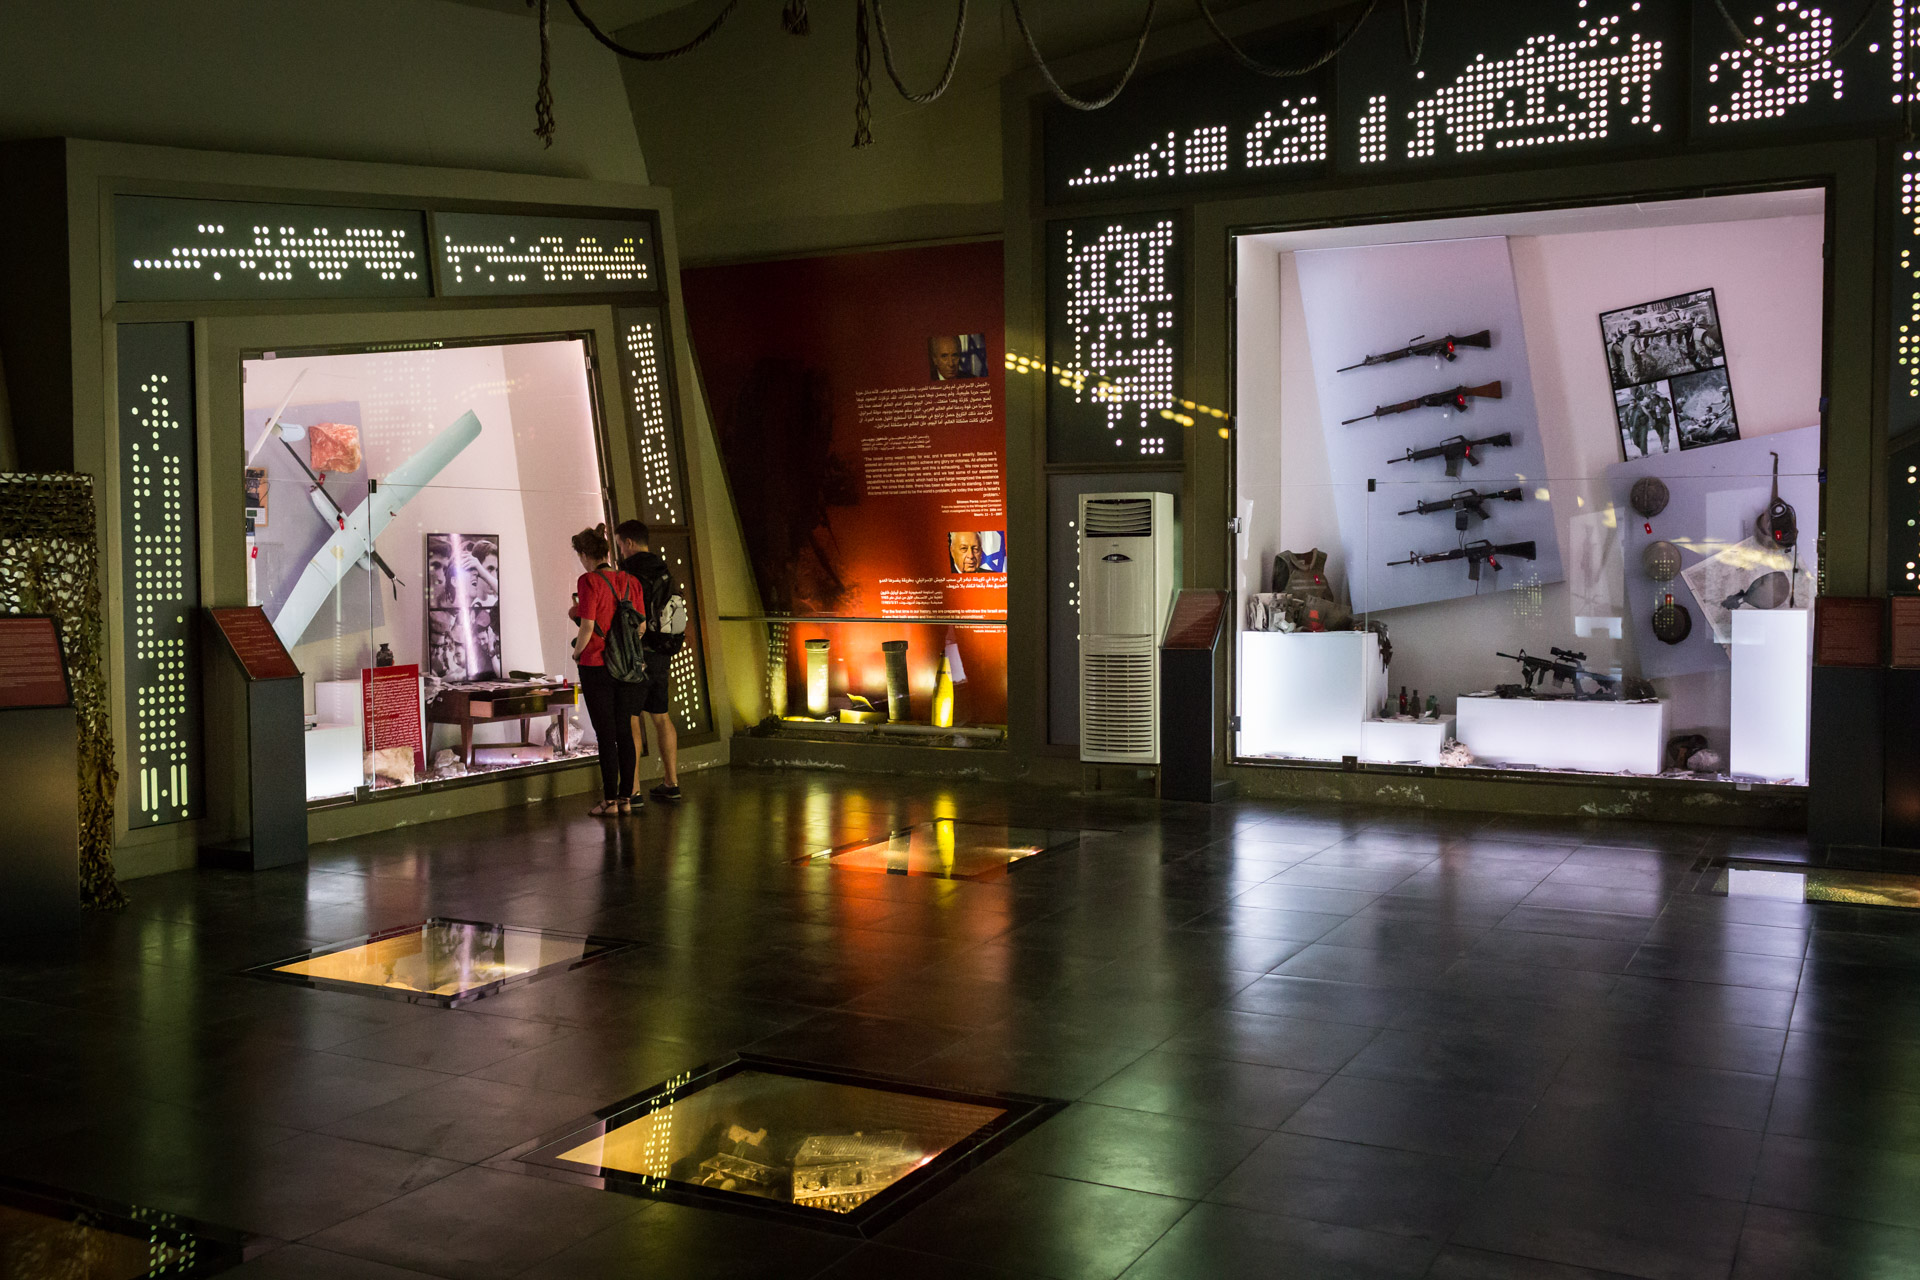 The museum hall has been extended over the years since it was opened. Israeli spy equipment and several drones used by Hezbollah can be seen among others.